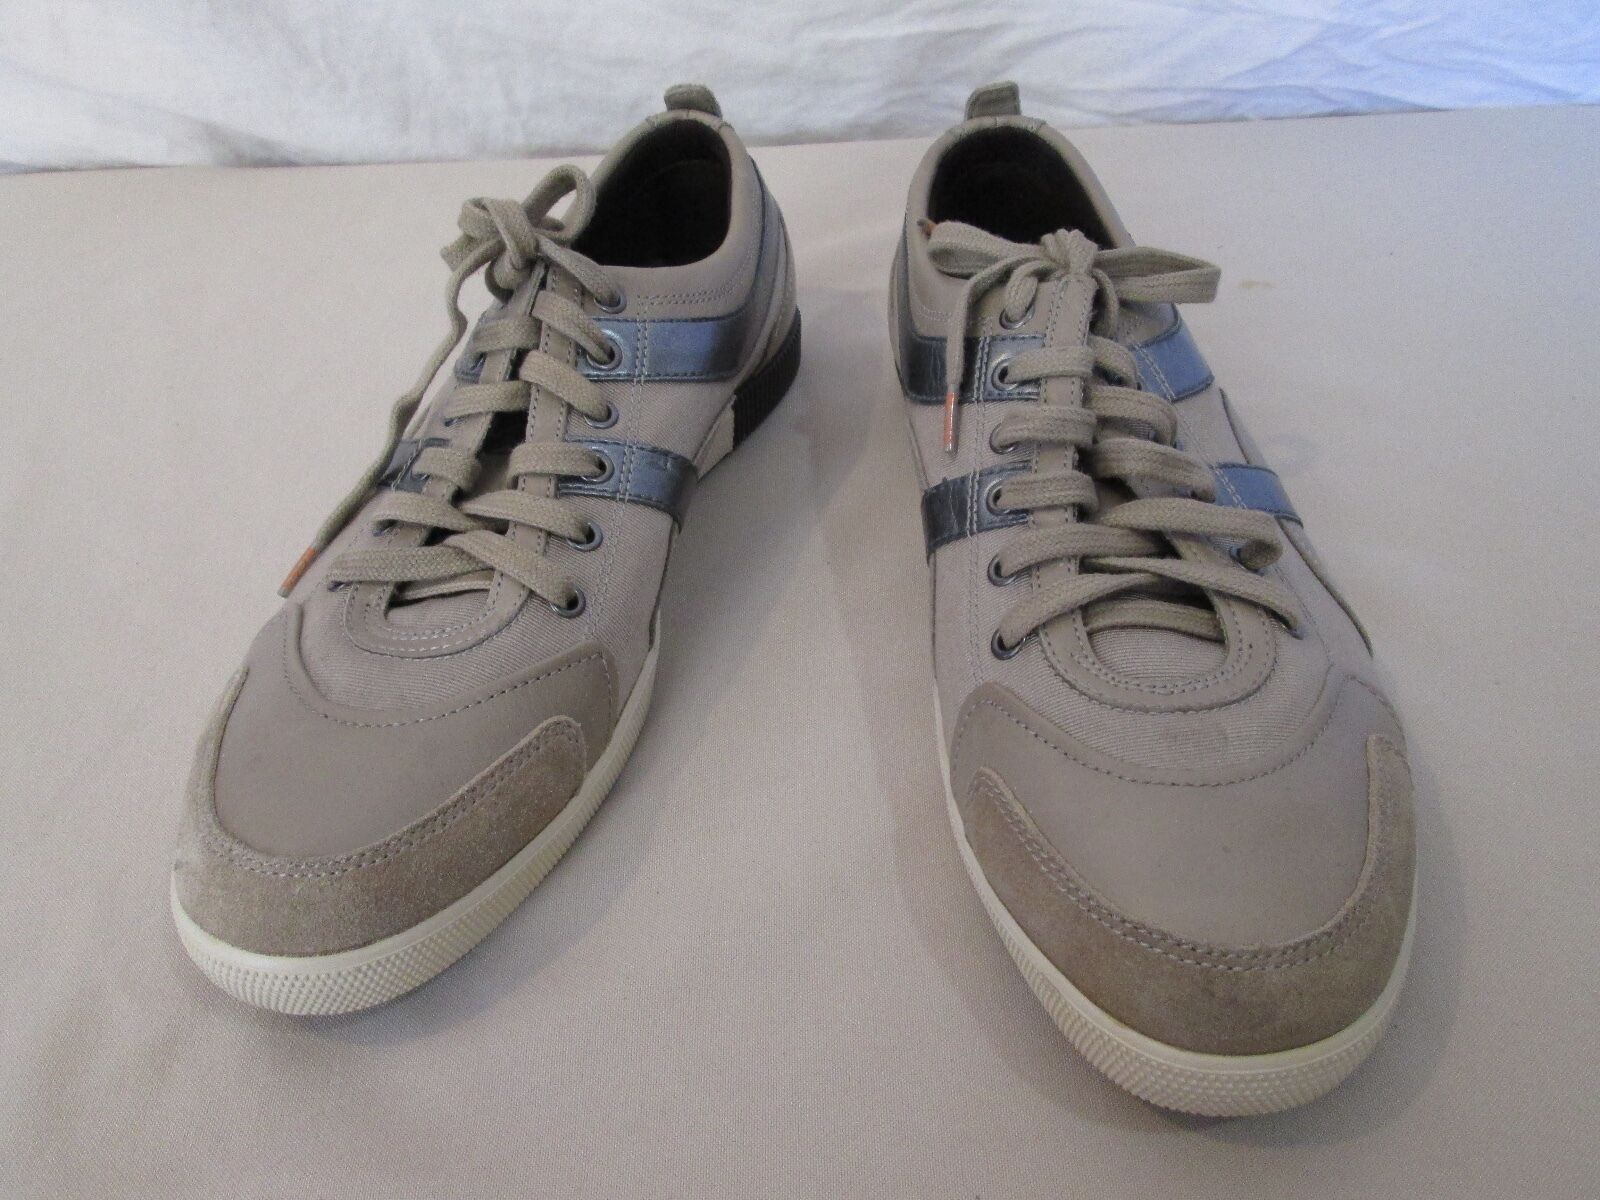 Genuine Femme Hugo Boss nylon and leather sneakers  chaussures  41 9.5 in taupe